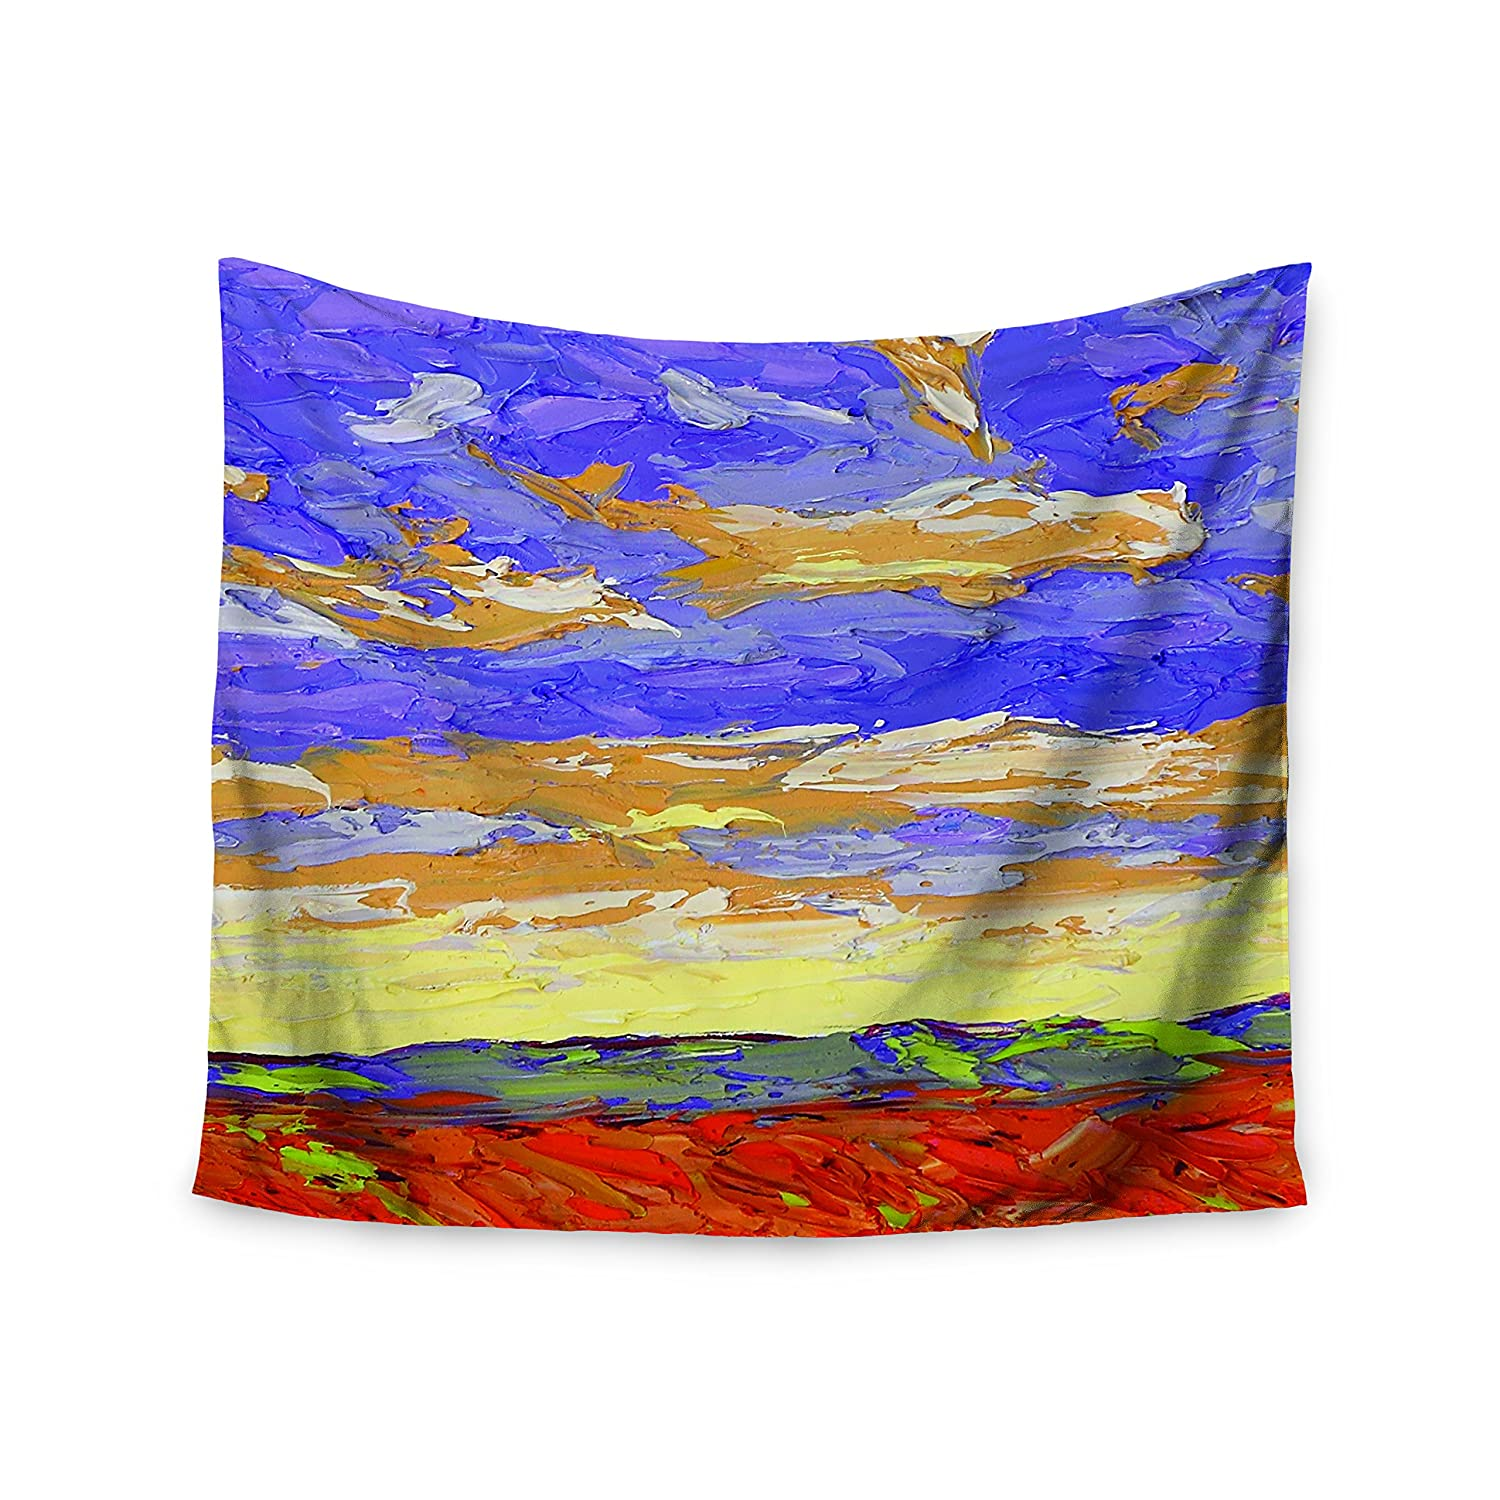 Kess InHouse Jeff Ferst After The Storm Blue Yellow Wall Tapestry 68 X 80